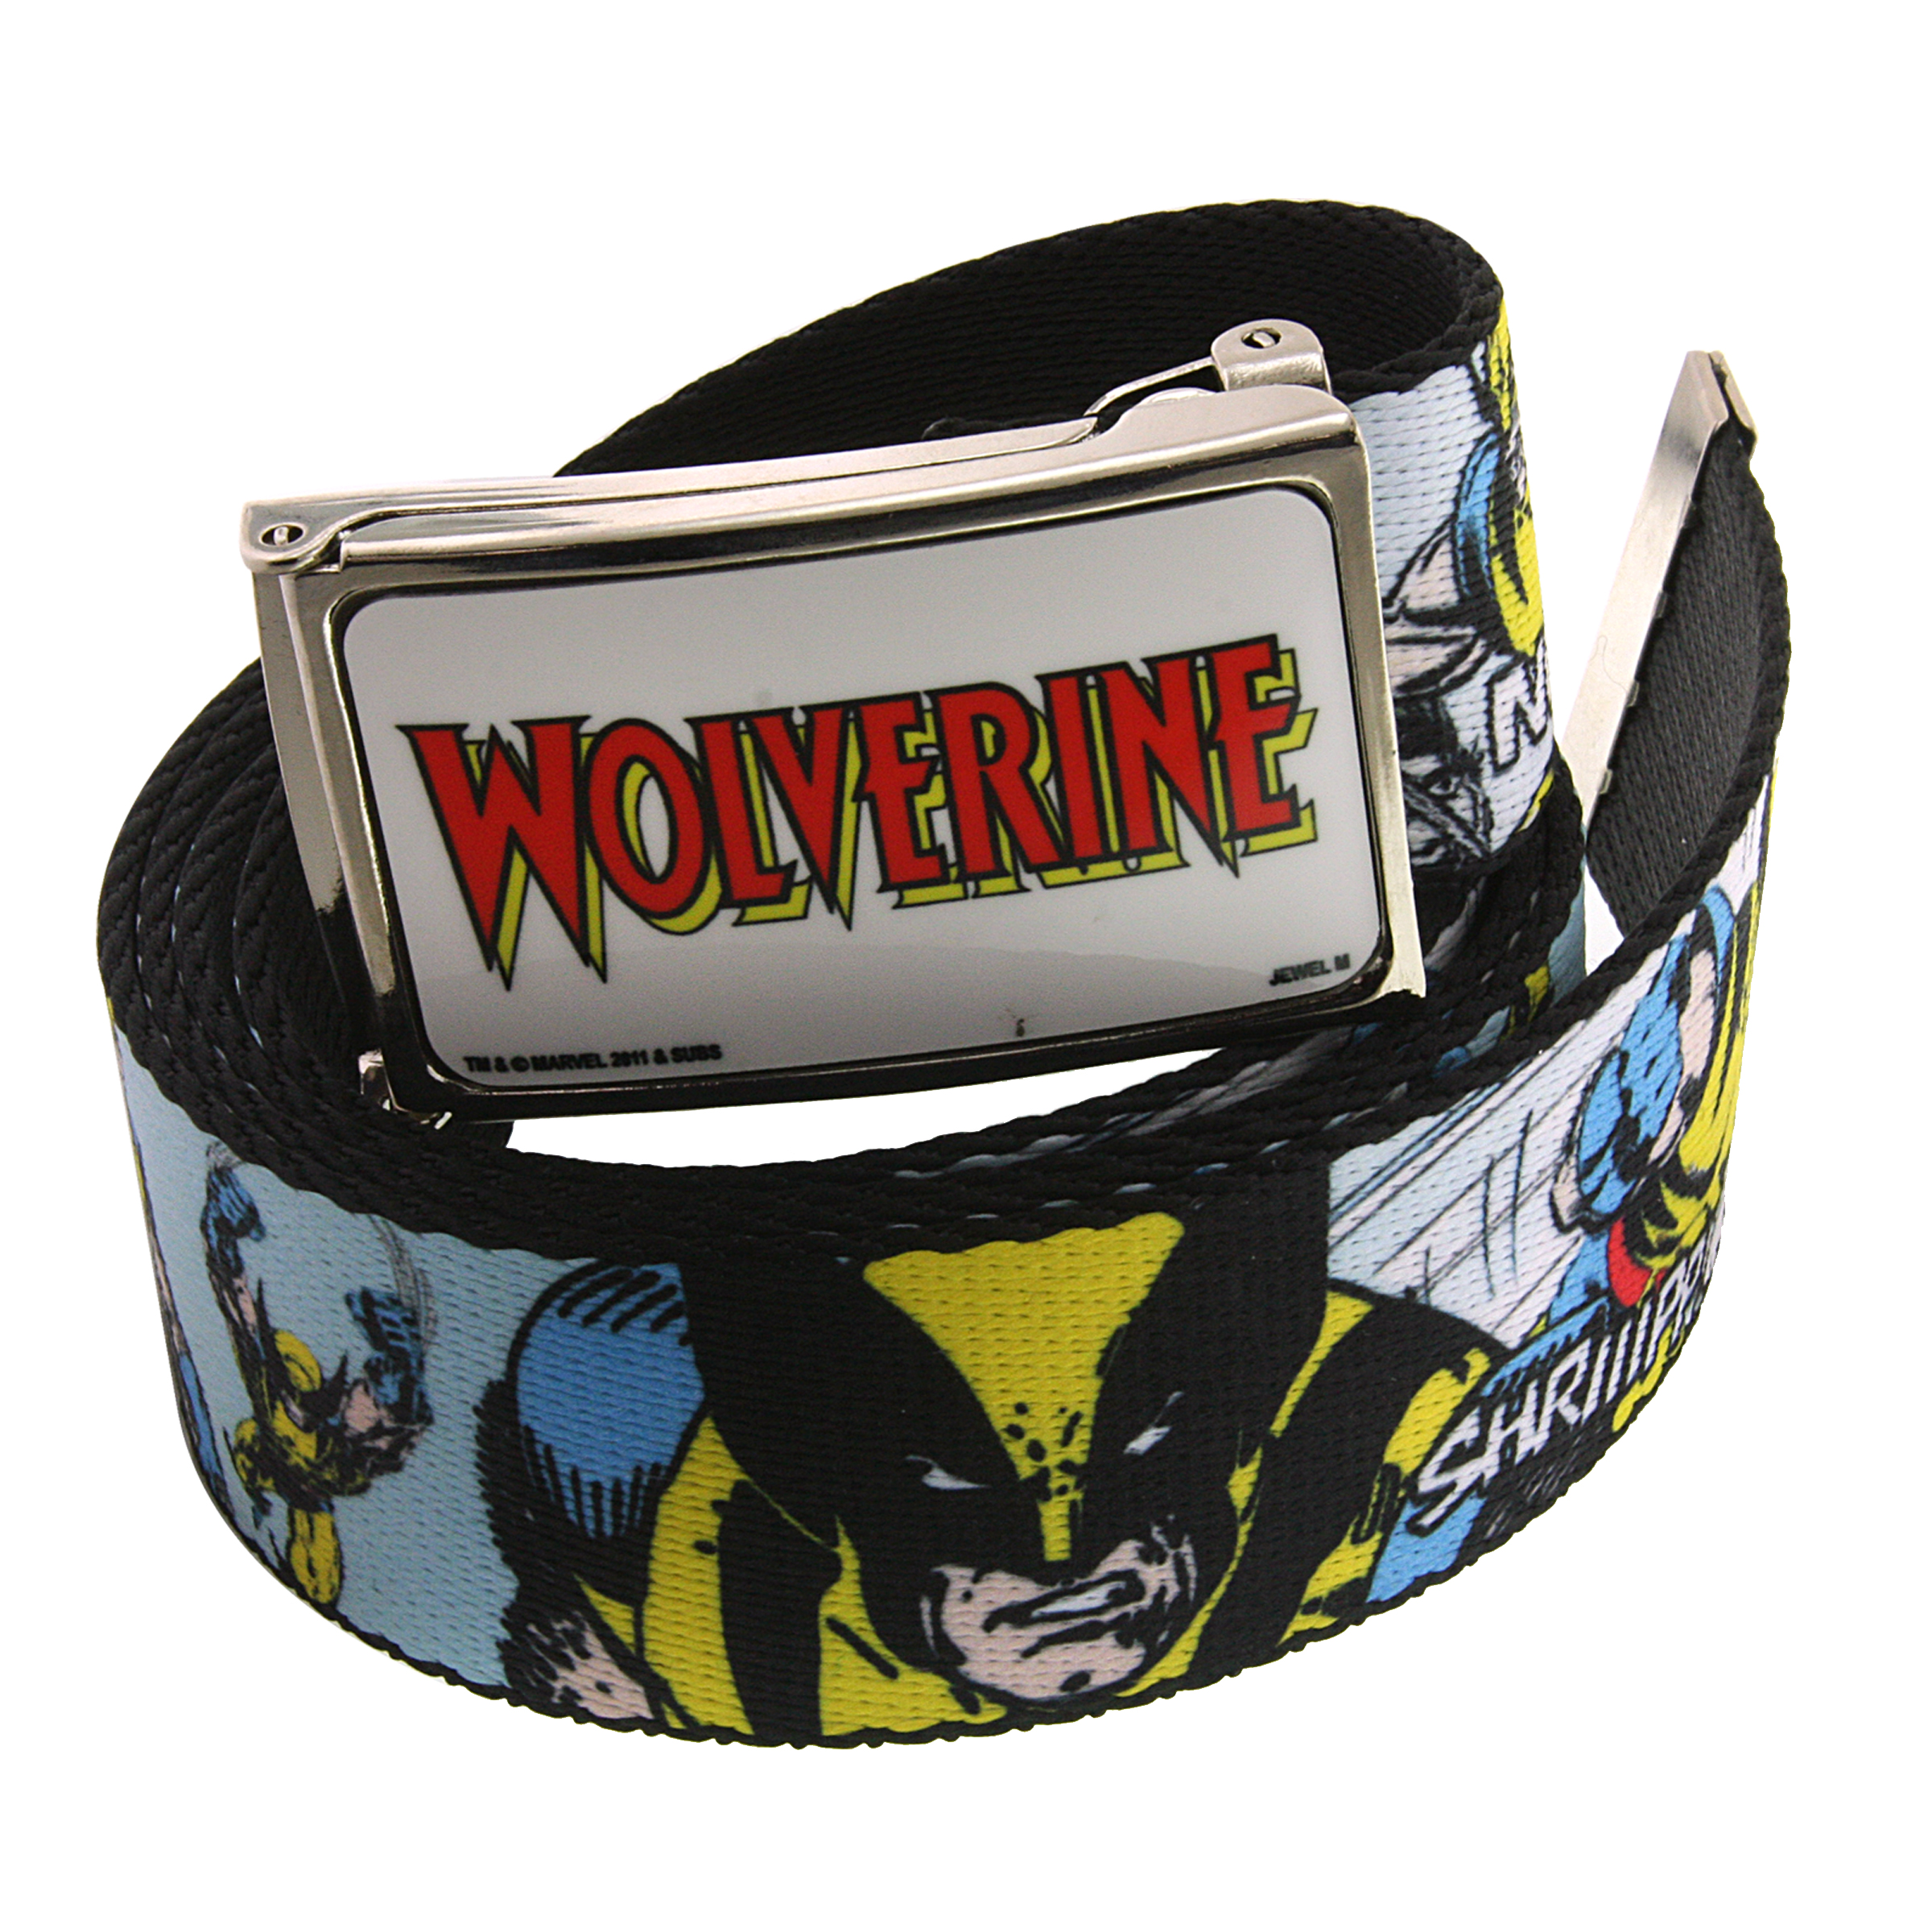 Marvel 1928 Marvel Men's Wolverine Comic Strip Graphic Web Belt (Multicolored) at Sears.com